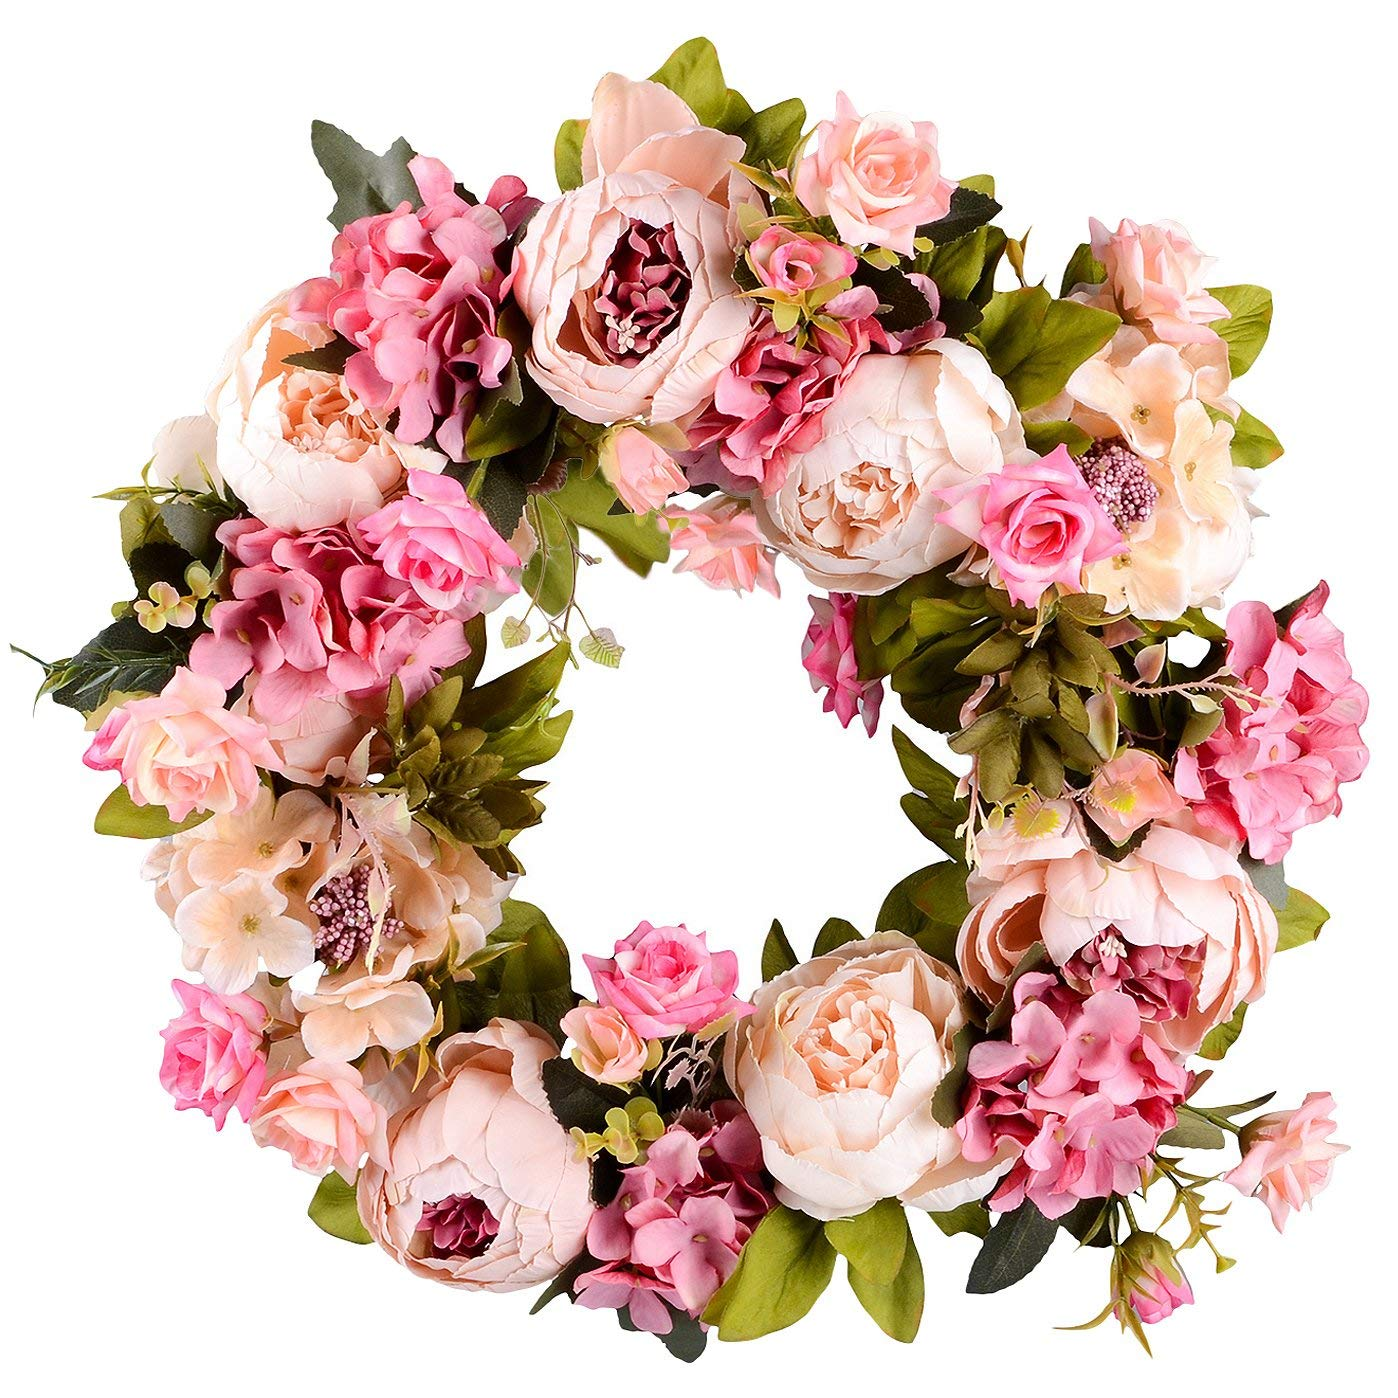 Artificial Flower Wreath Peony Wreath 16inch Spring  Round Wreath For The Front Door, Wedding, Home Decor